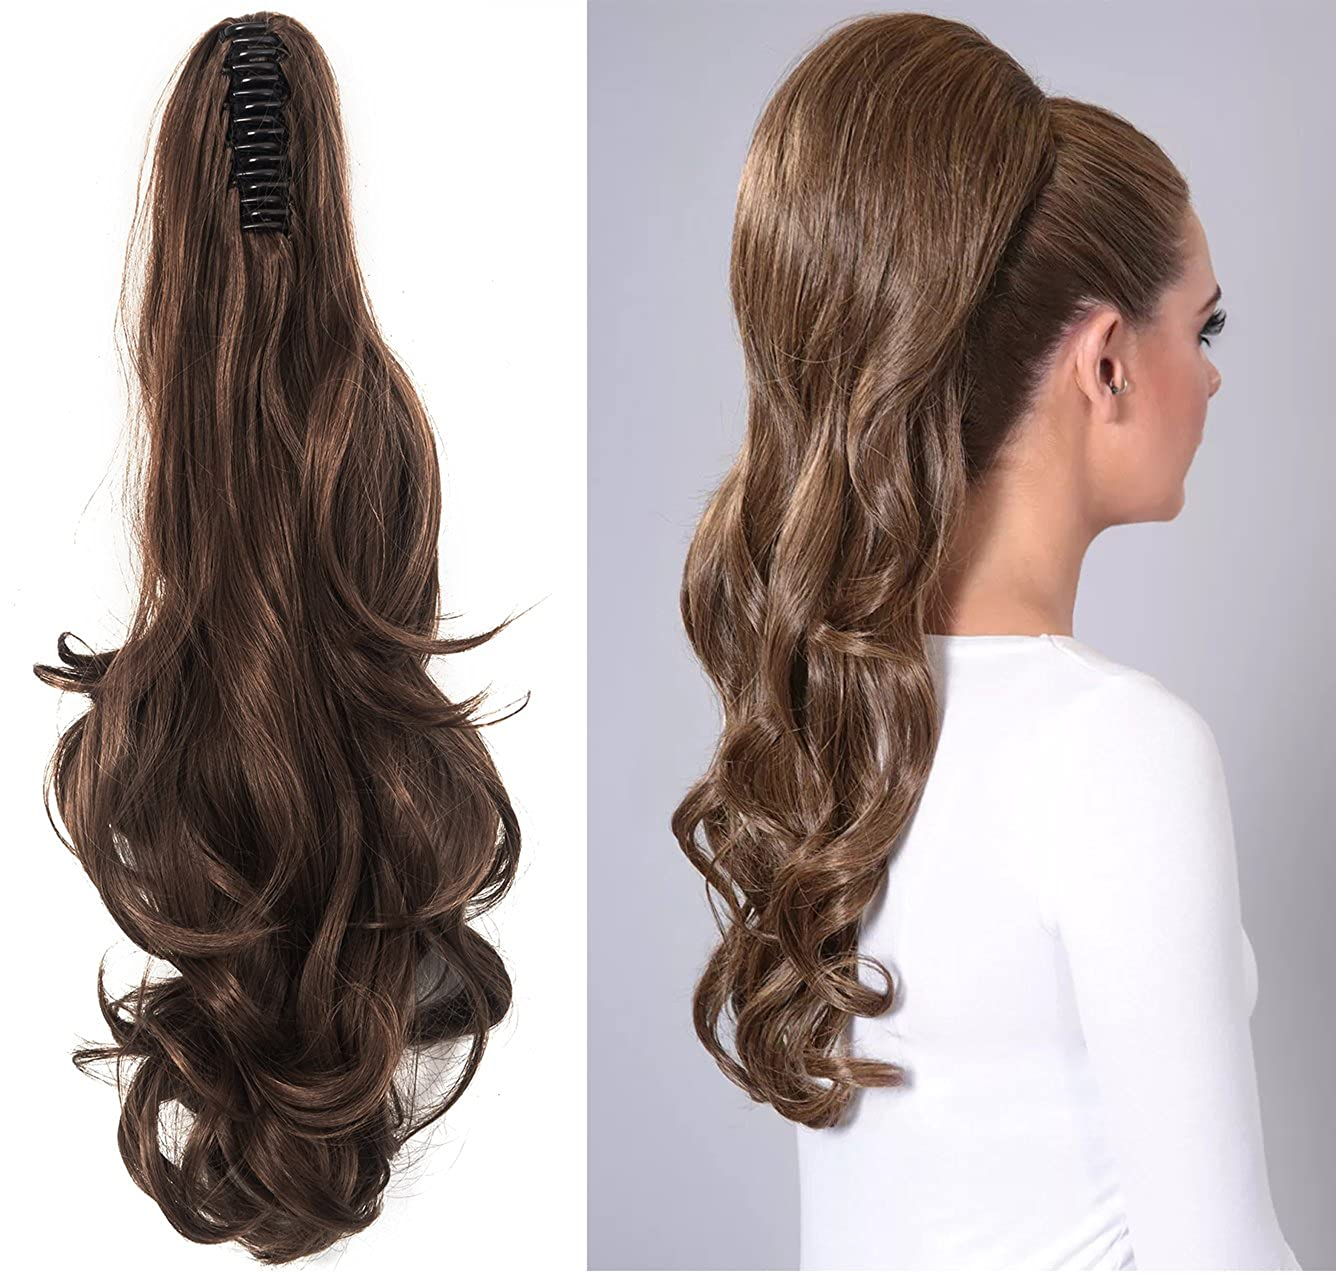 18 21 Curly Straight Claw Jaw Ponytail Clip In Hair Extensions Wavy Hairpiece OMG@T6-CN-ZZH-JP-C